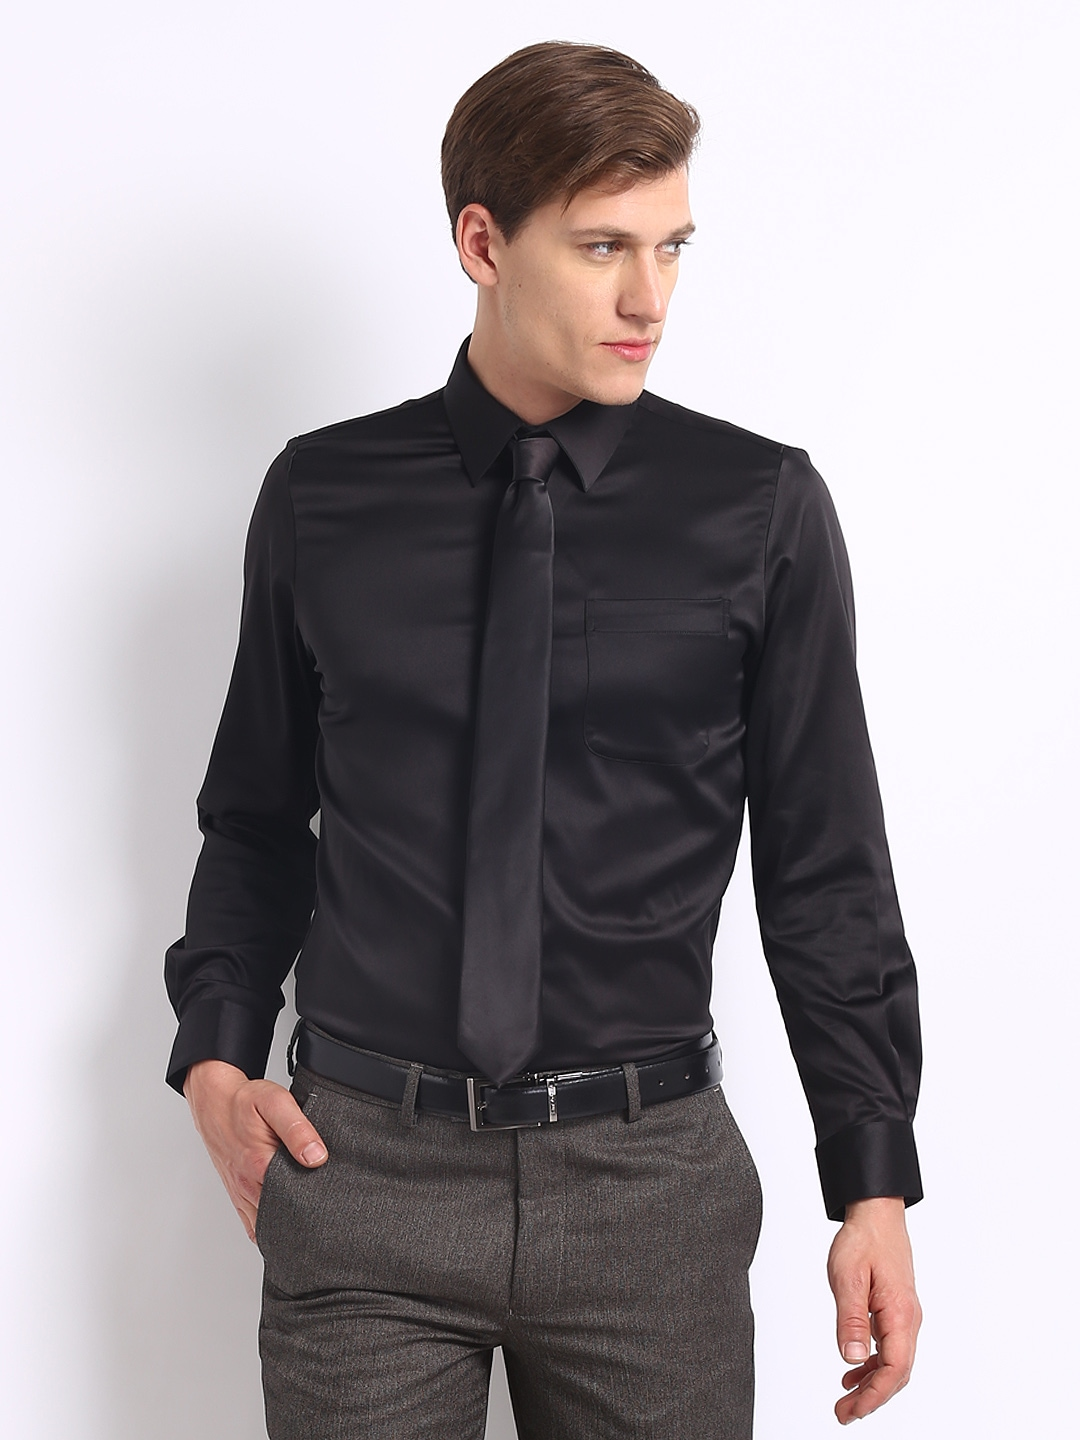 Black Shirt With Black Tie - All About Ties Collections 2017